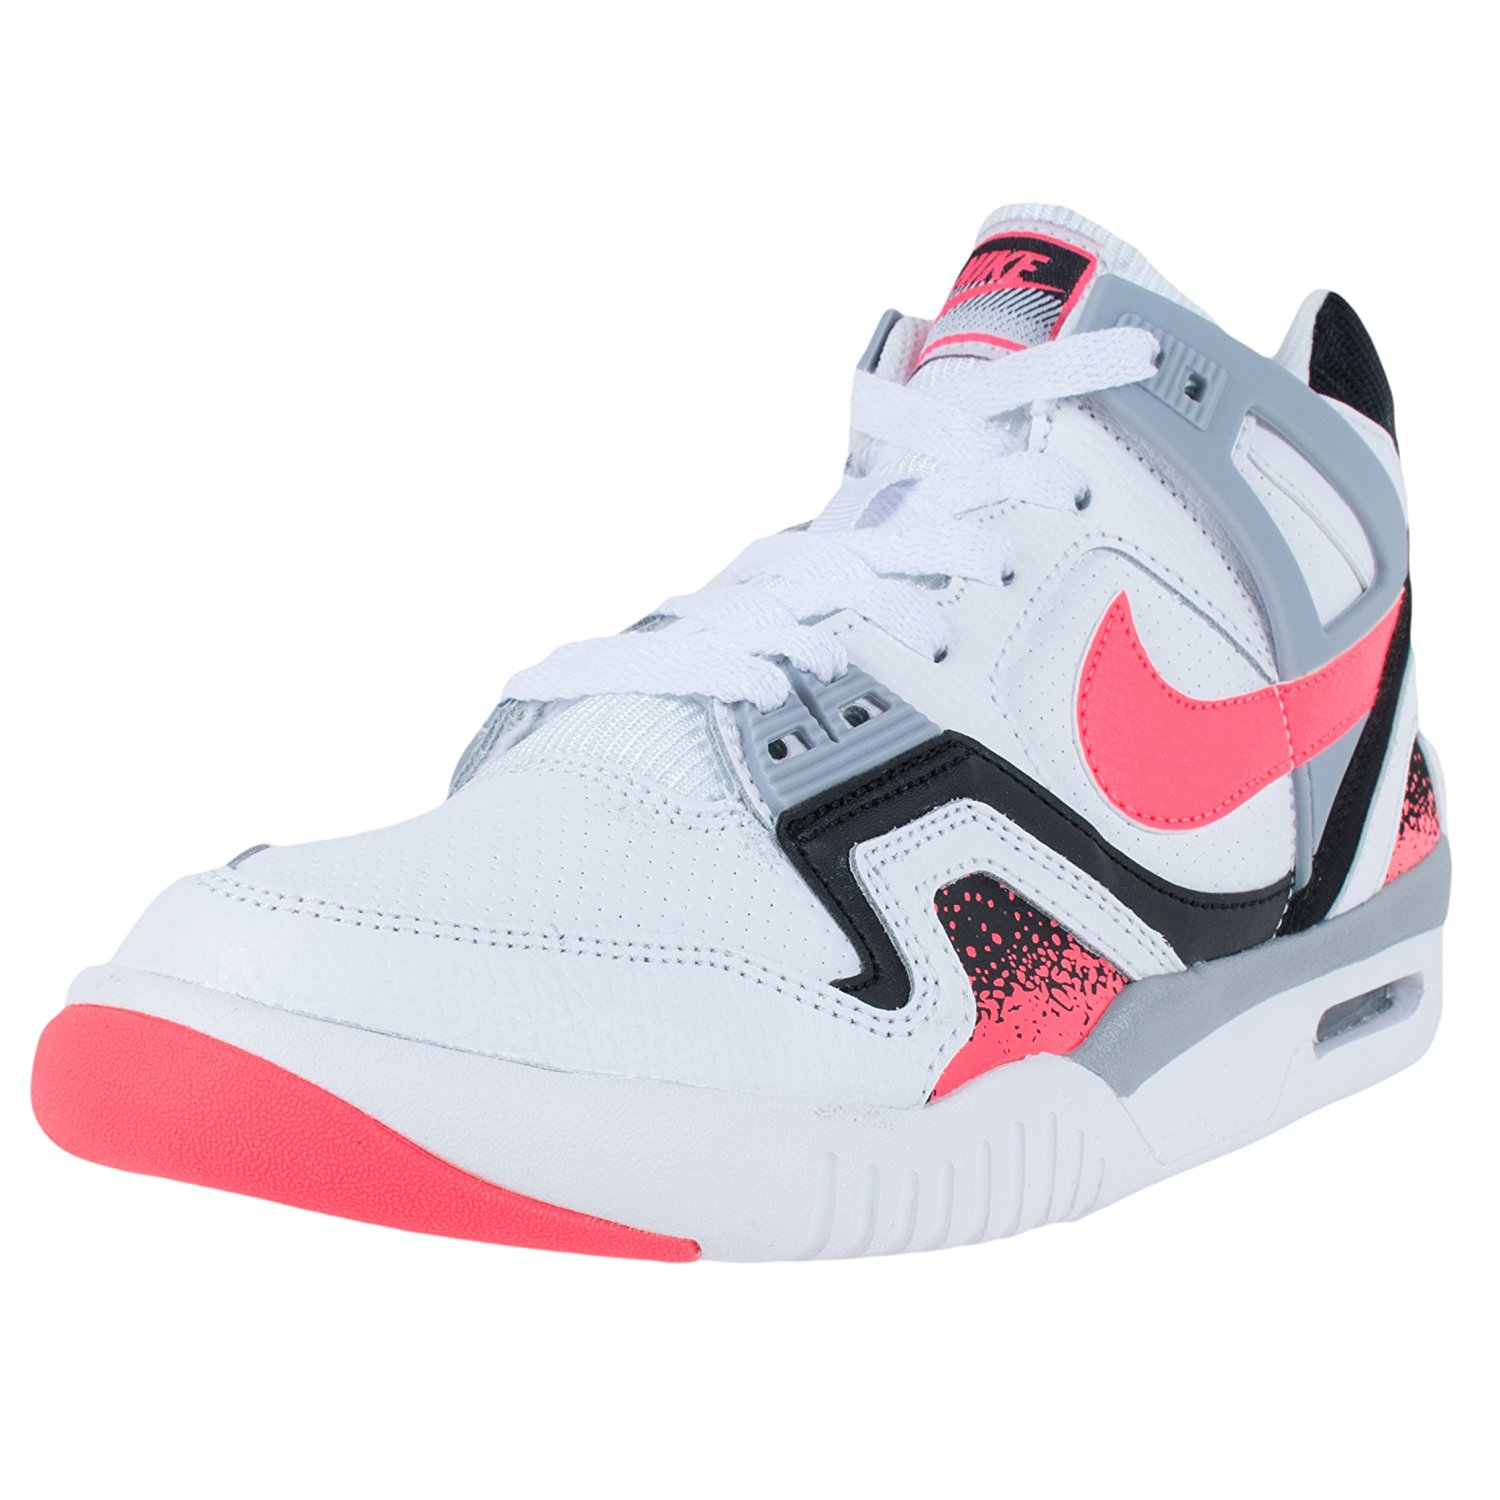 4c9aac2fbb31 Get Quotations · NIKE BOYS AIR TECH CHALLENGE 2 GS TENNIS SHOES WHITE HYPER  PUNCH 654435 101